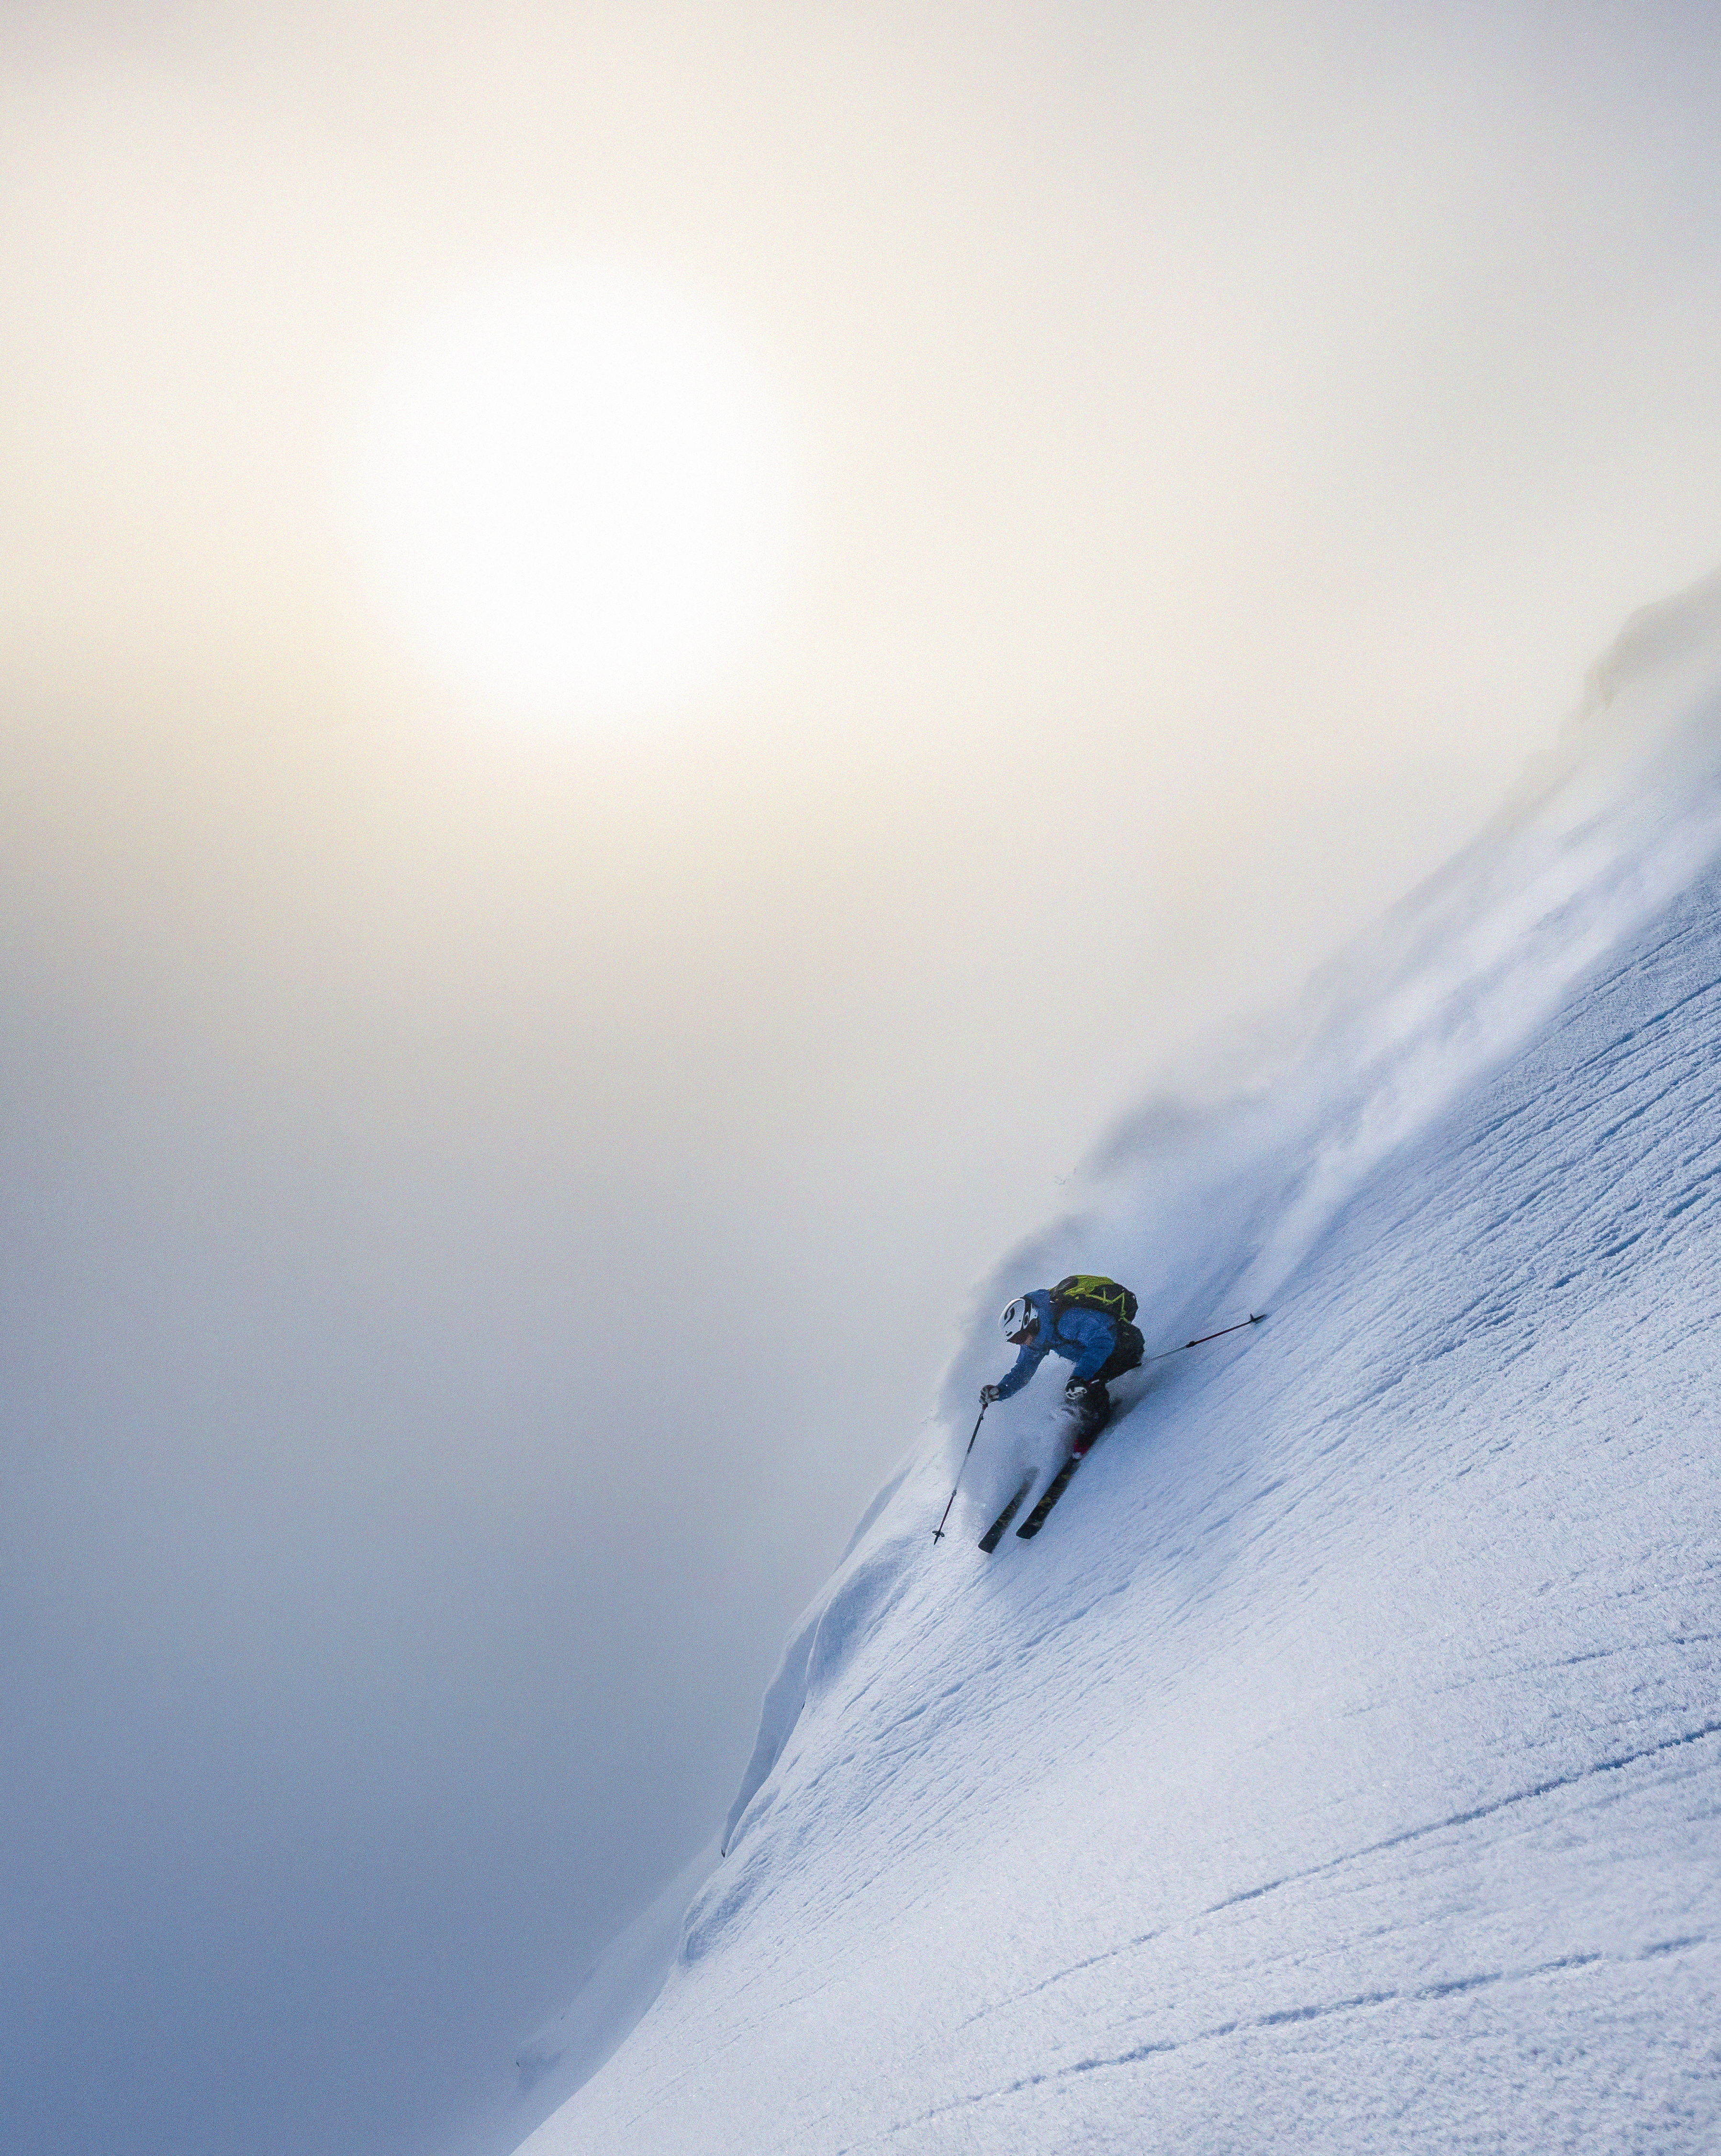 Skiing steep and deep in Sogndal